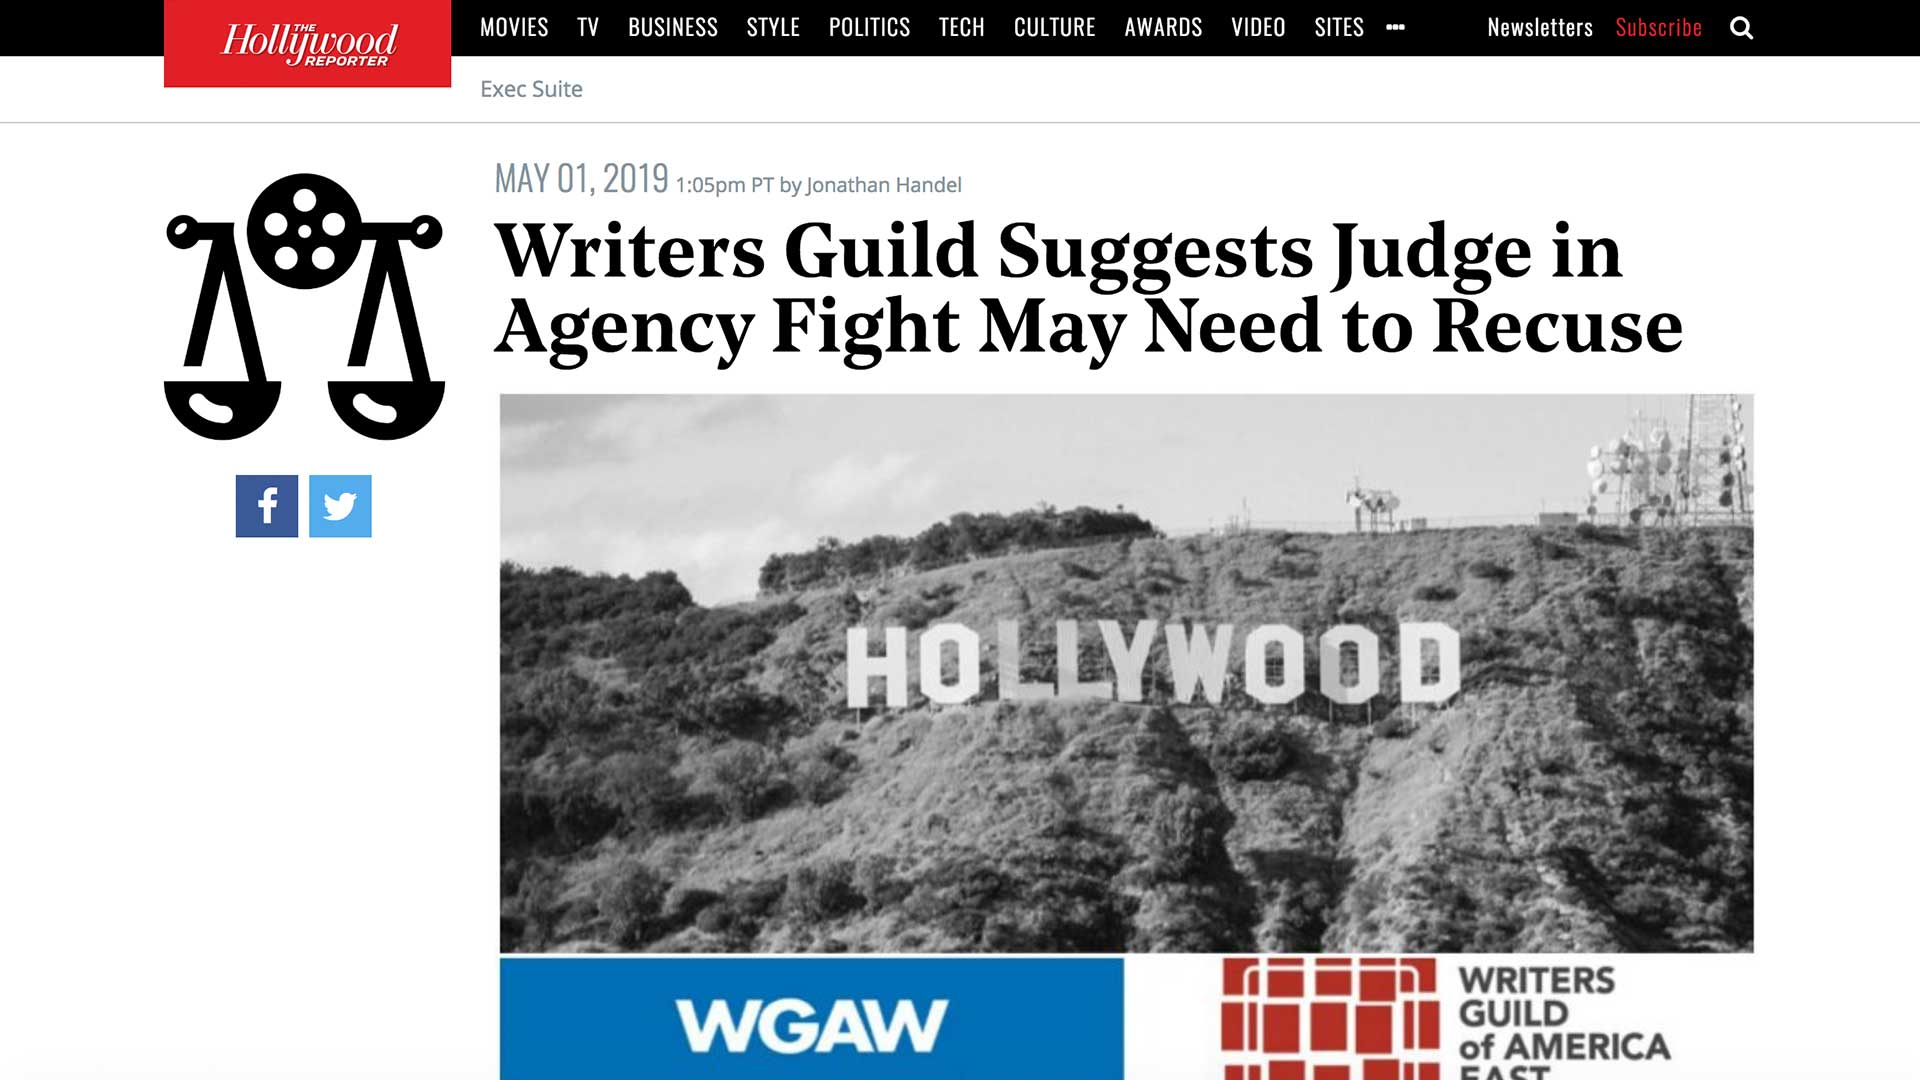 Fairness Rocks News Writers Guild Suggests Judge in Agency Fight May Need to Recuse